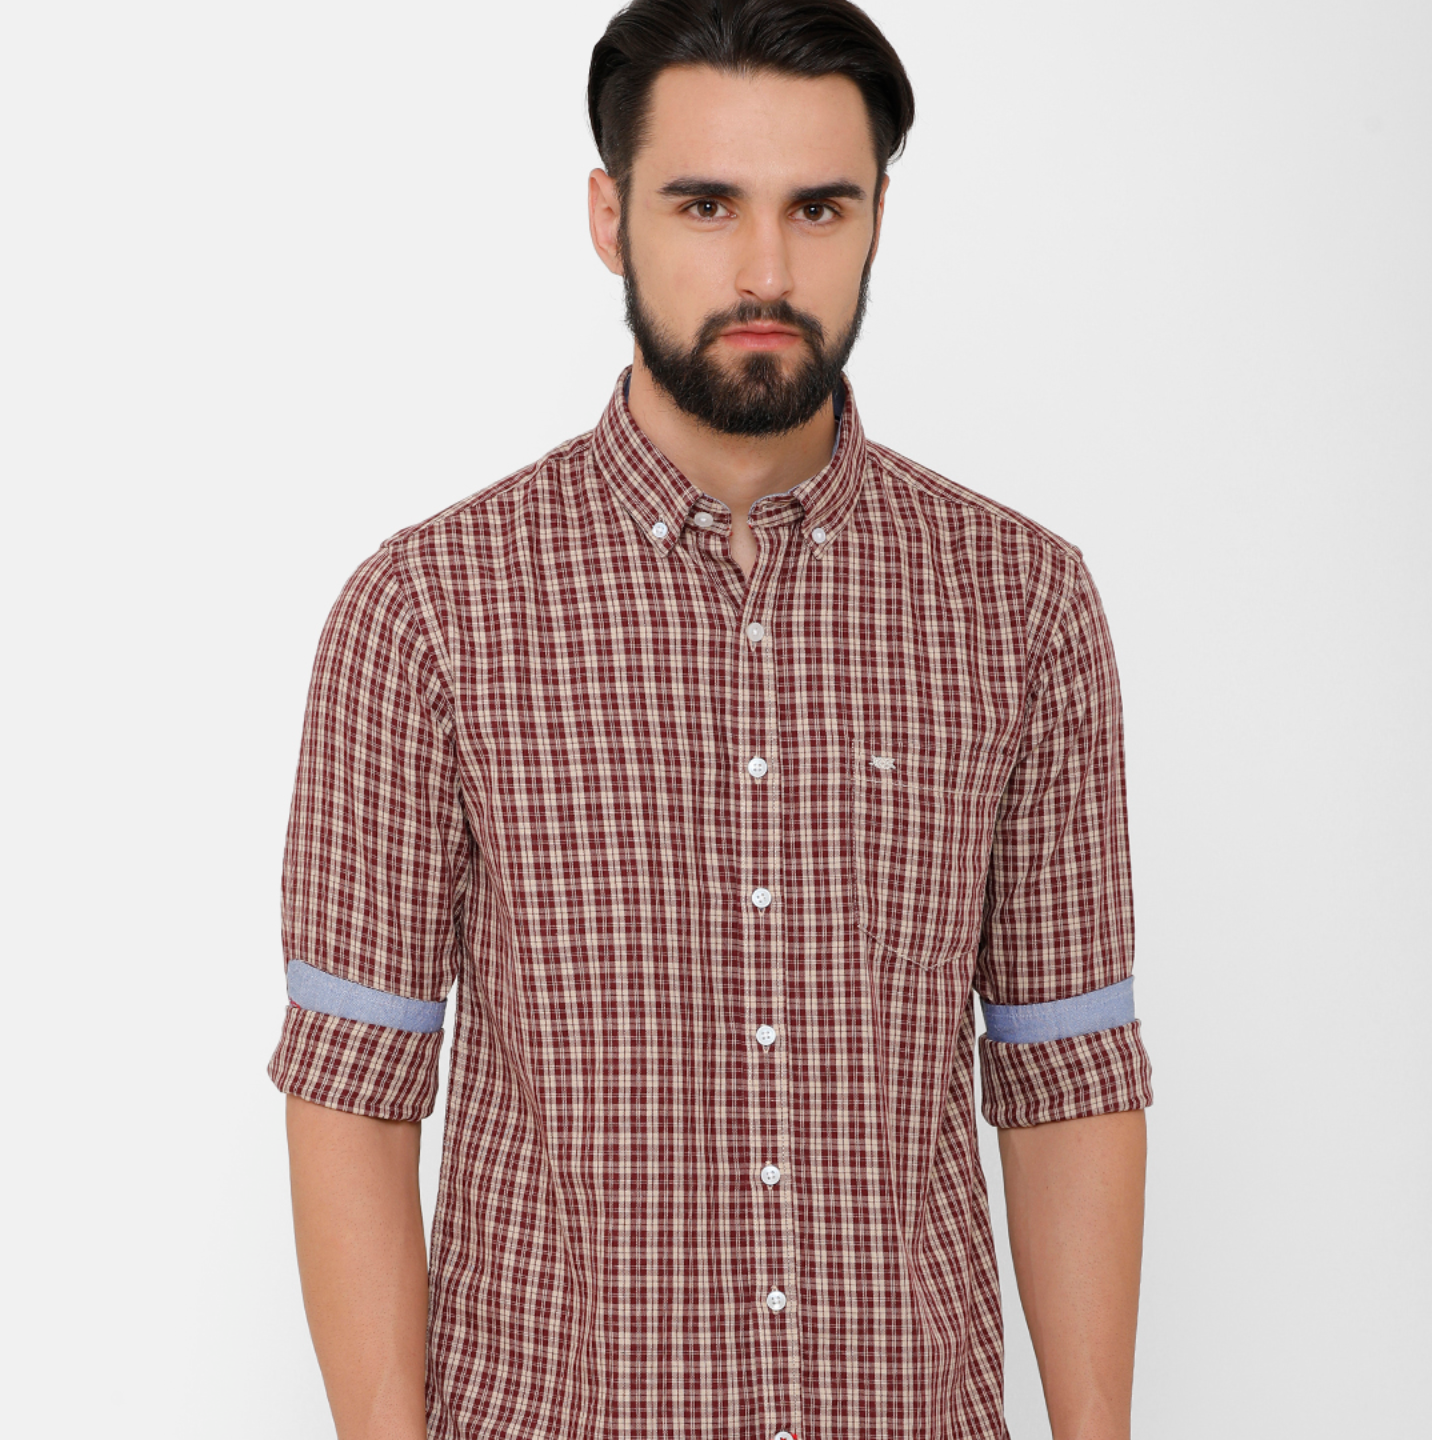 Bar Harbour Men Mustard & Burgundy Slim Fit Checked Casual Shirt